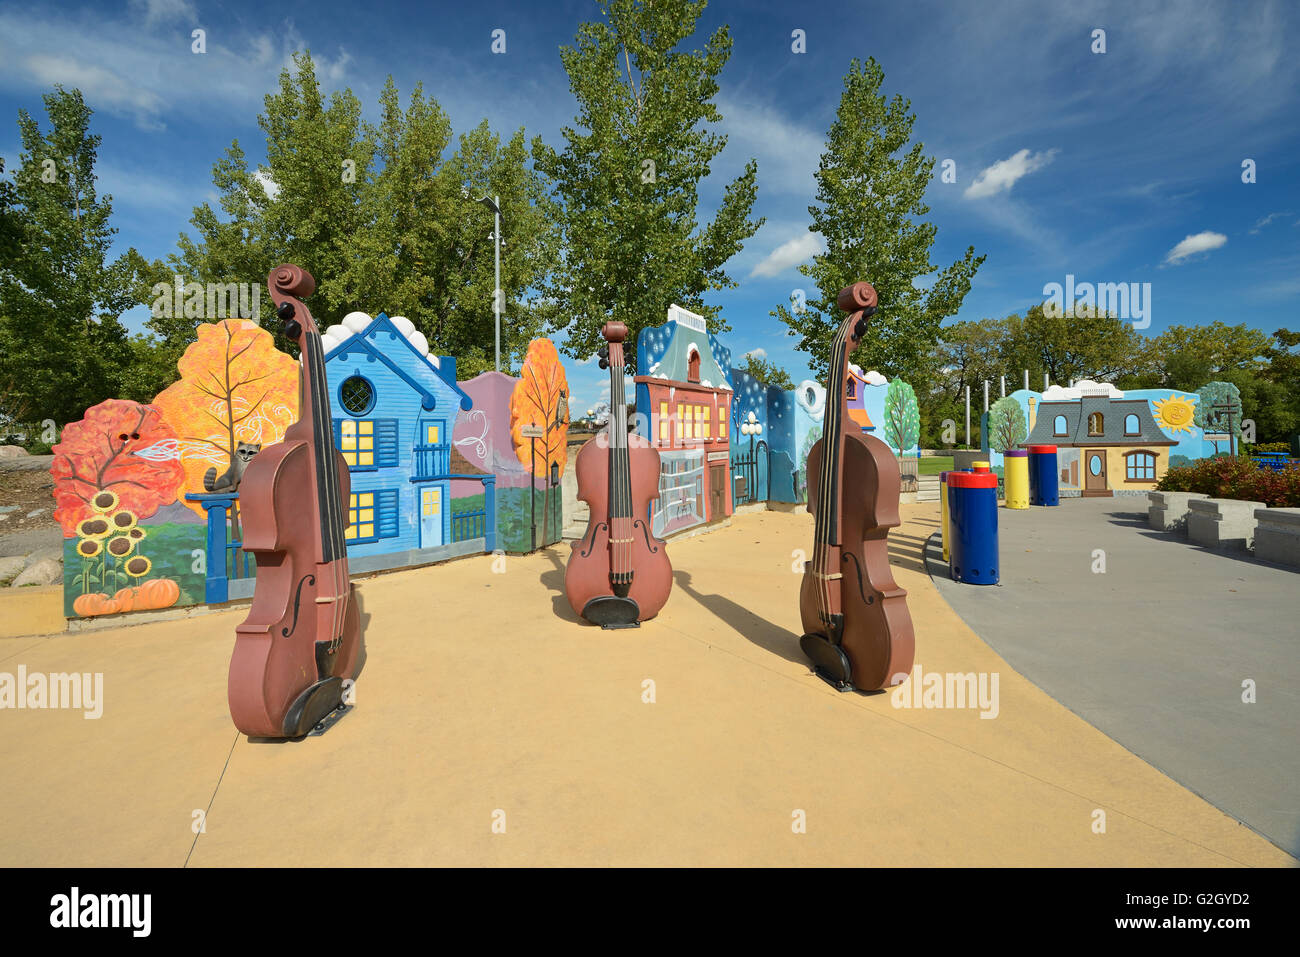 Variety Heritage Adventure Park at The Forks Winnipeg Manitoba Canada - Stock Image